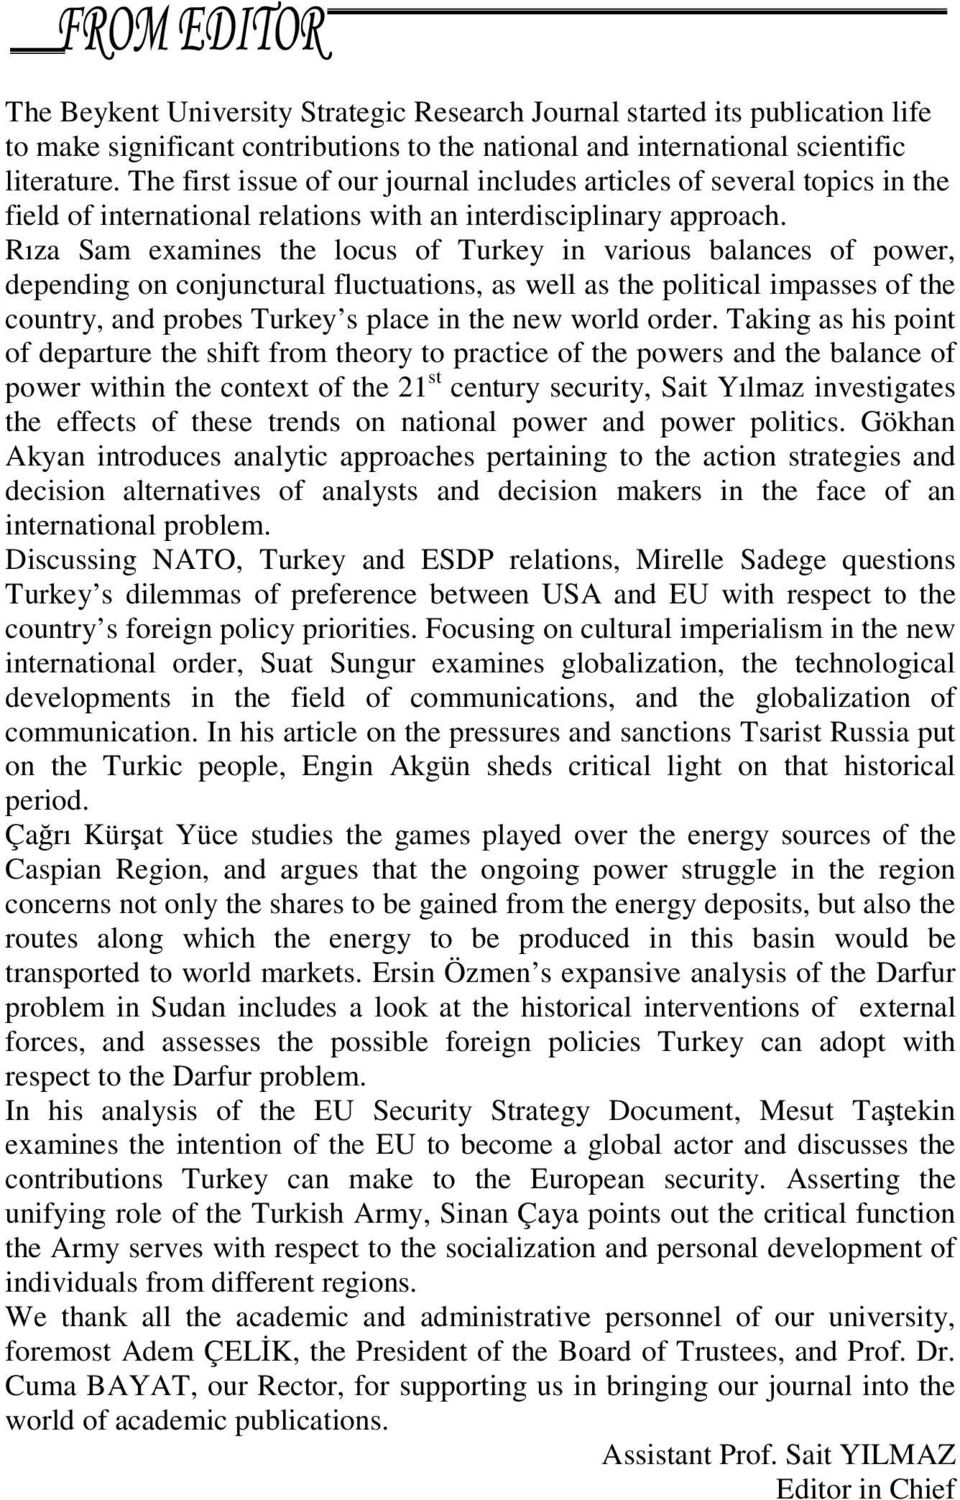 Rıza Sam examines the locus of Turkey in various balances of power, depending on conjunctural fluctuations, as well as the political impasses of the country, and probes Turkey s place in the new